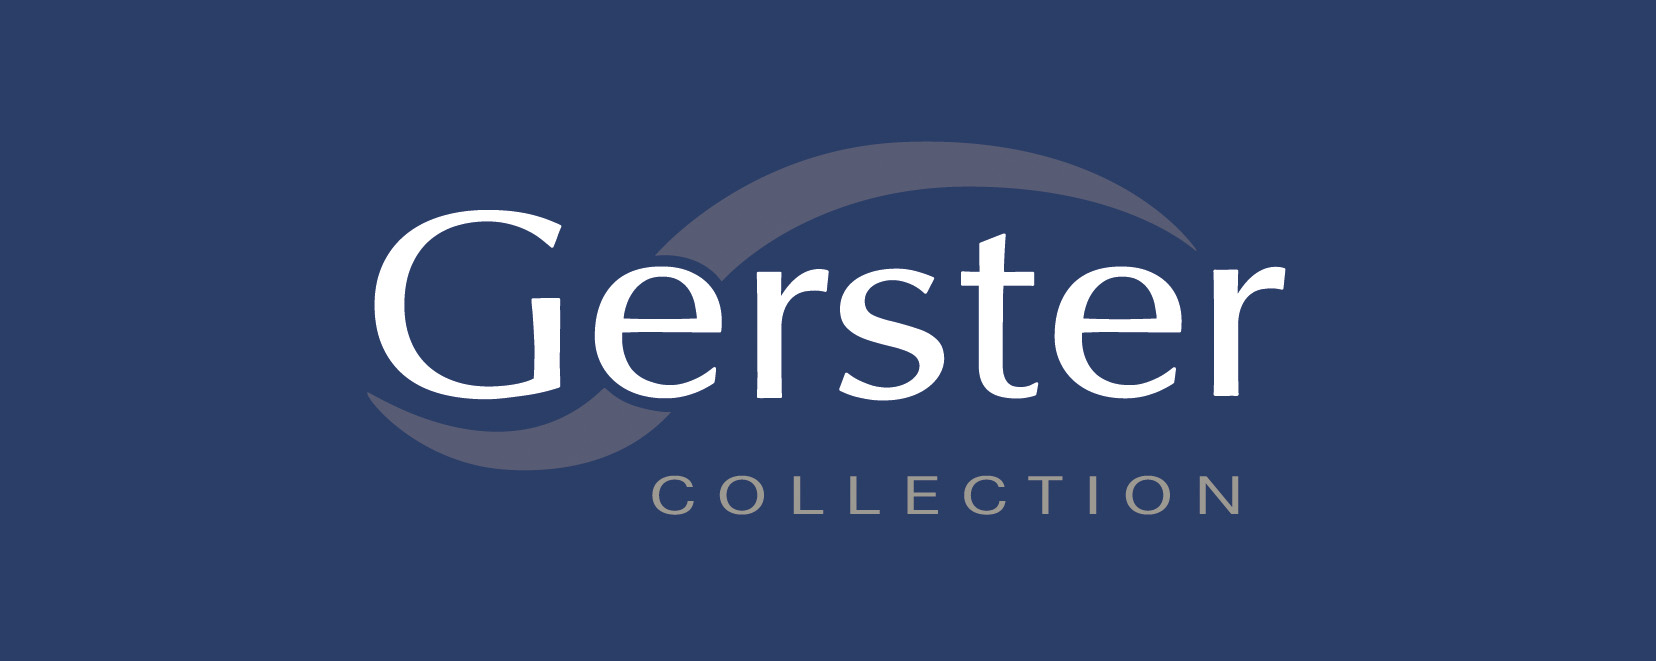 file logo der gustav gerster gmbh co wikimedia commons. Black Bedroom Furniture Sets. Home Design Ideas